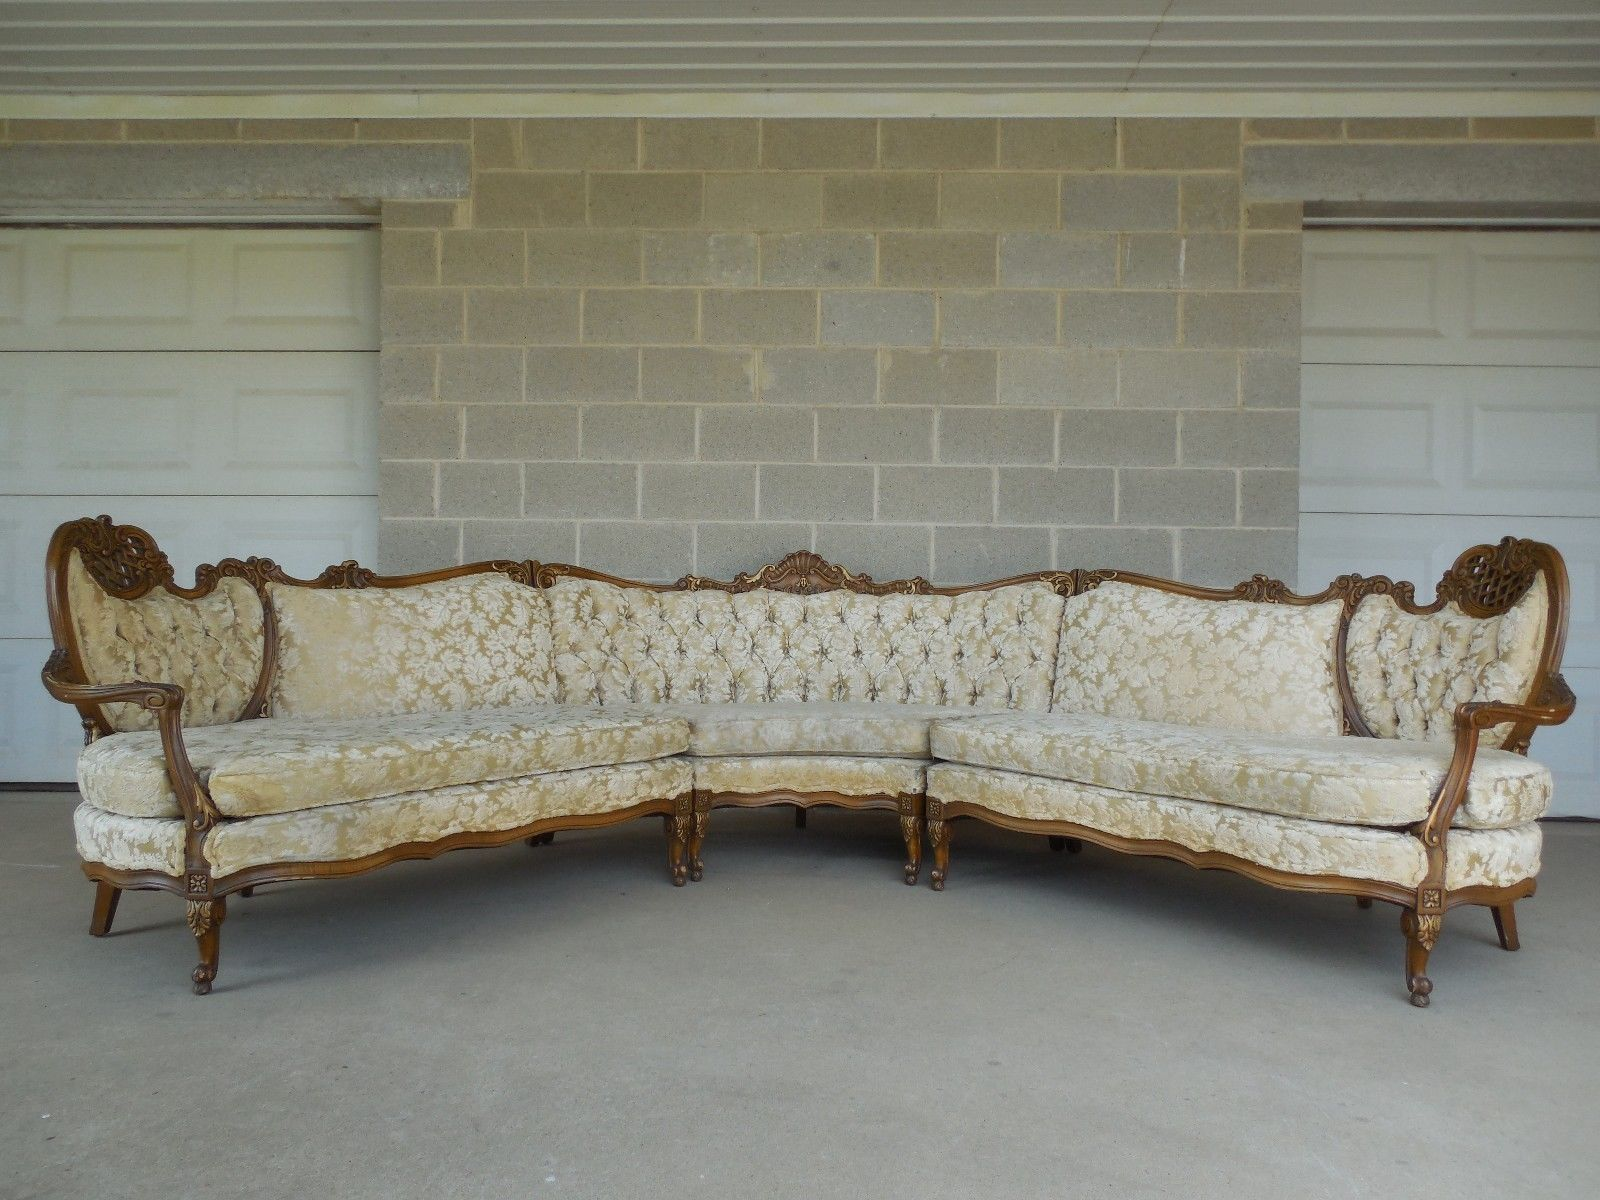 Vintage High Quality French Provincial Tufted Upholstery Corner 3